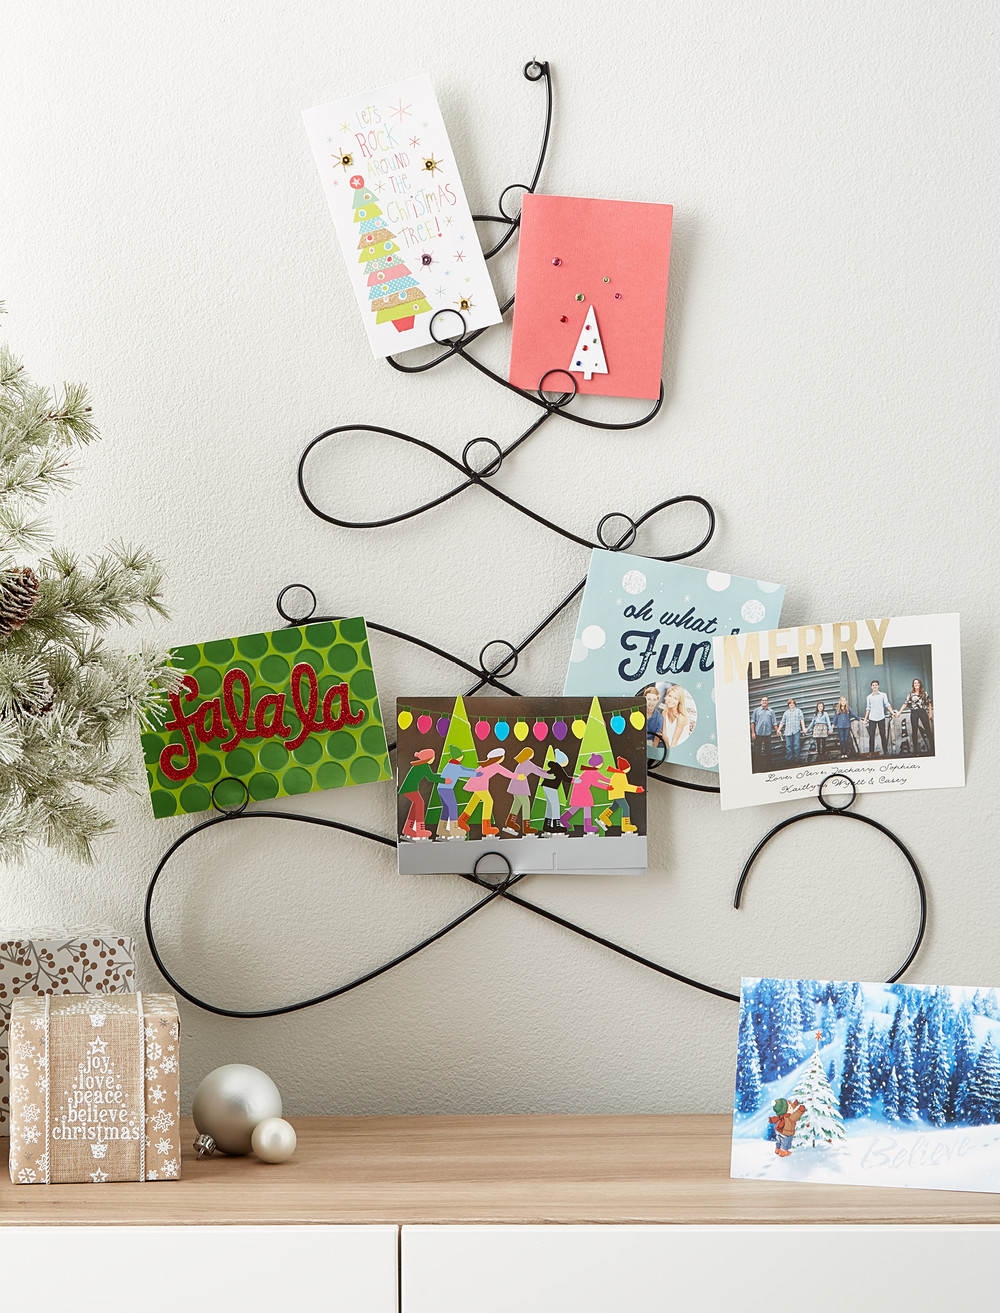 Fresh ideas for holiday card displays container stories create holiday wall dcor that can transform for year round use with our black tree wall cardholder secure holiday cards and photos within its 12 loops m4hsunfo